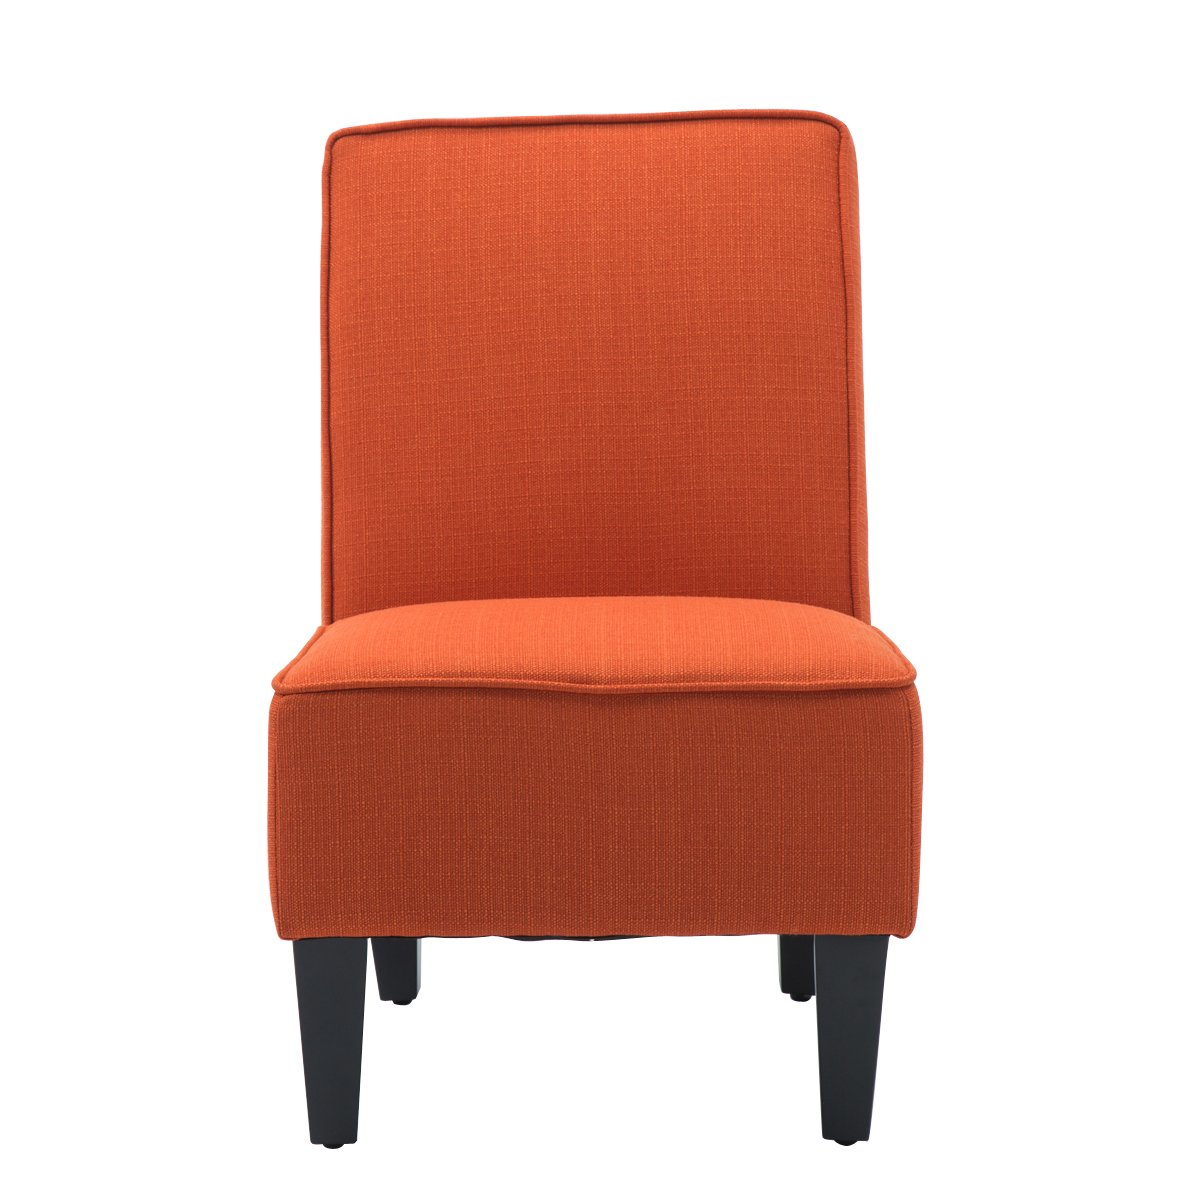 YongQiang Living Room Sofa Cushioned Upholstered Linen Armless Settee Modern Solid Casual Home Recliner Chair With Wood Legs Orange